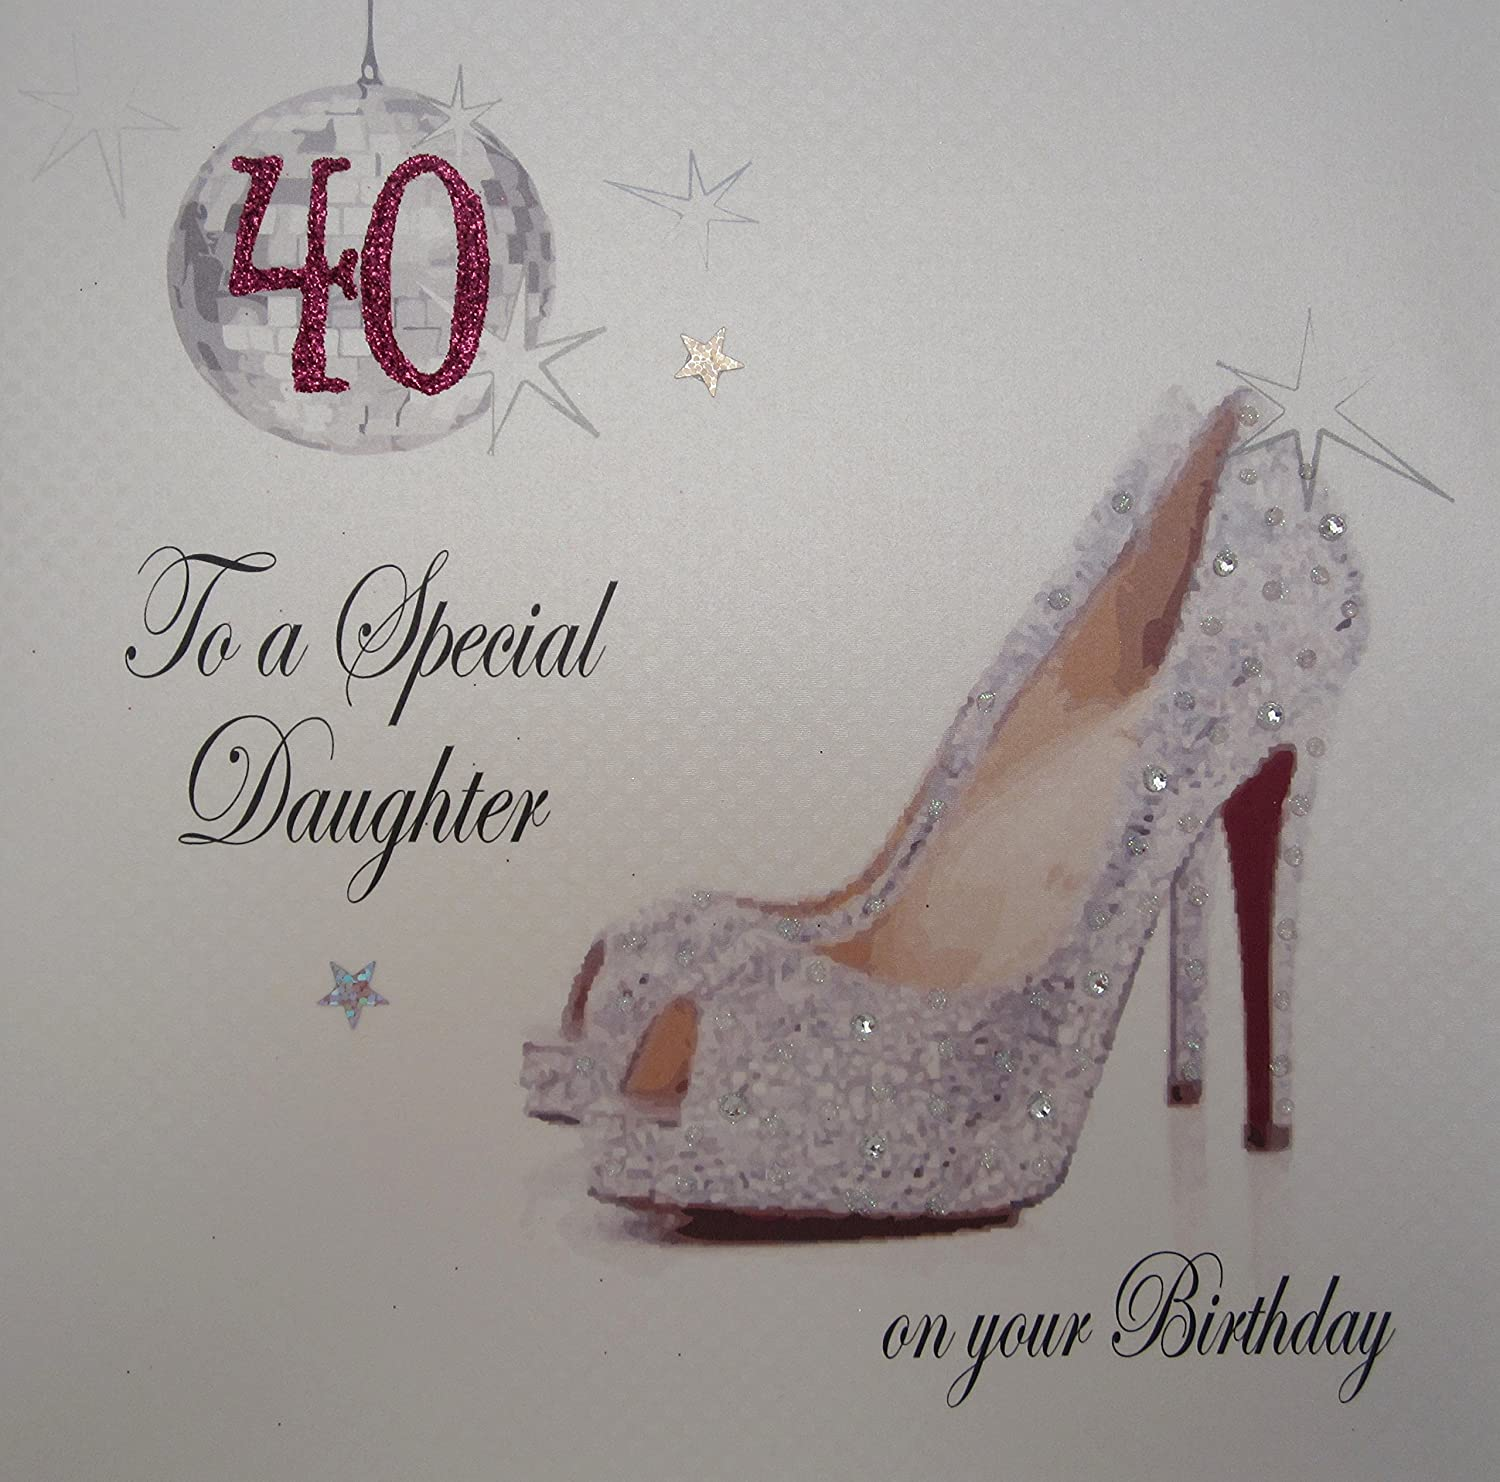 WHITE COTTON CARDS 40 To A Special Daughter Handmade 40th Birthday Card Sparkly Shoe Amazoncouk Kitchen Home